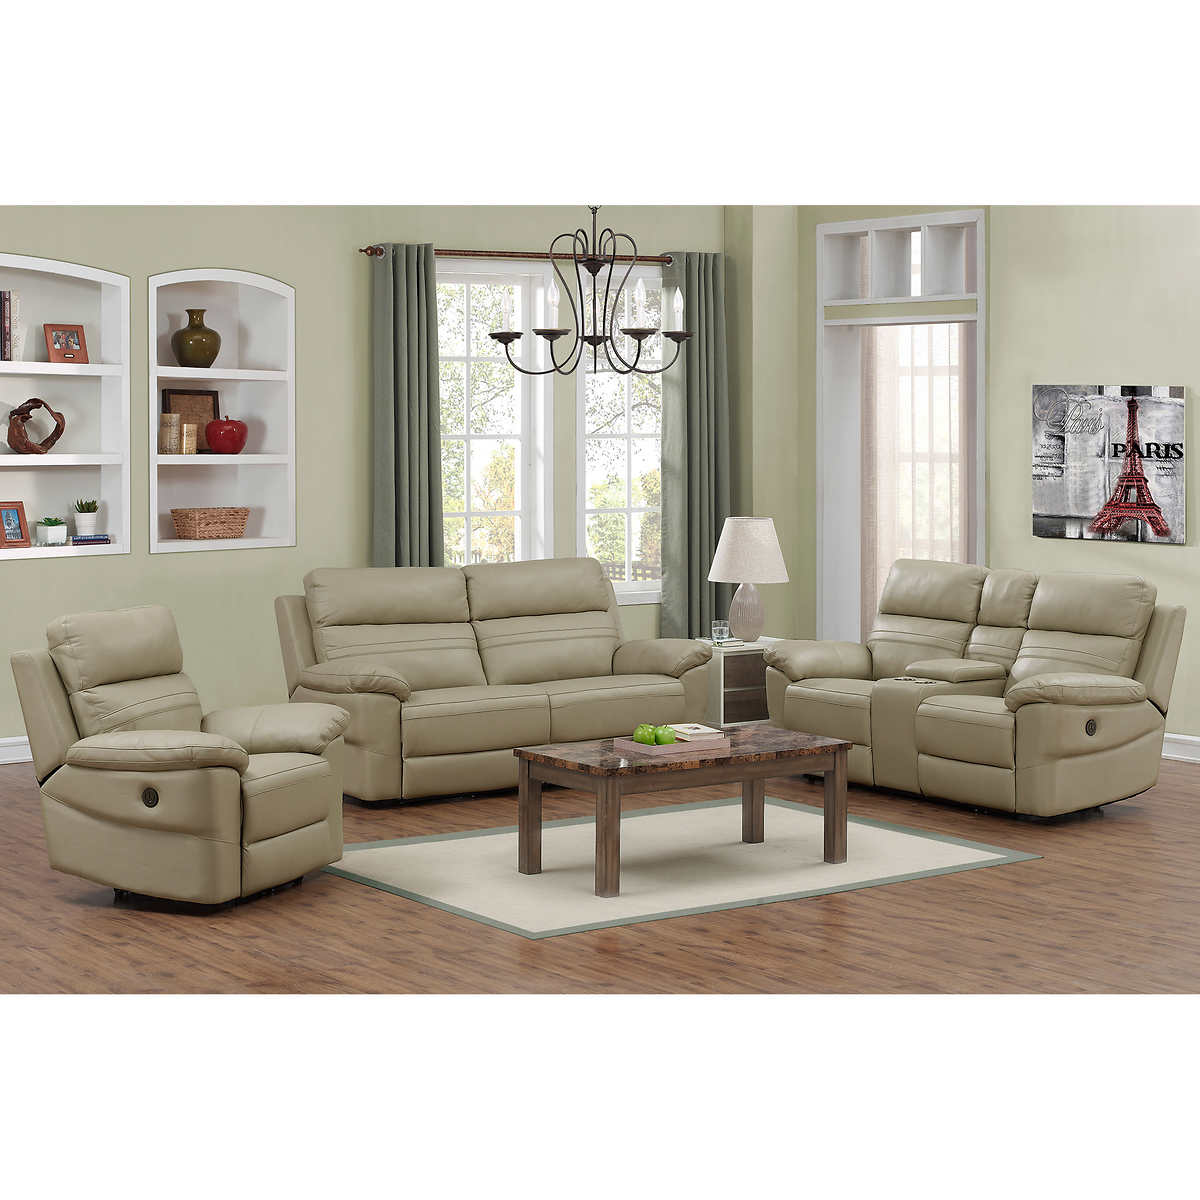 a117ecc82 Rockhill 3-piece Top Grain Leather Power-Reclining Living Room Set